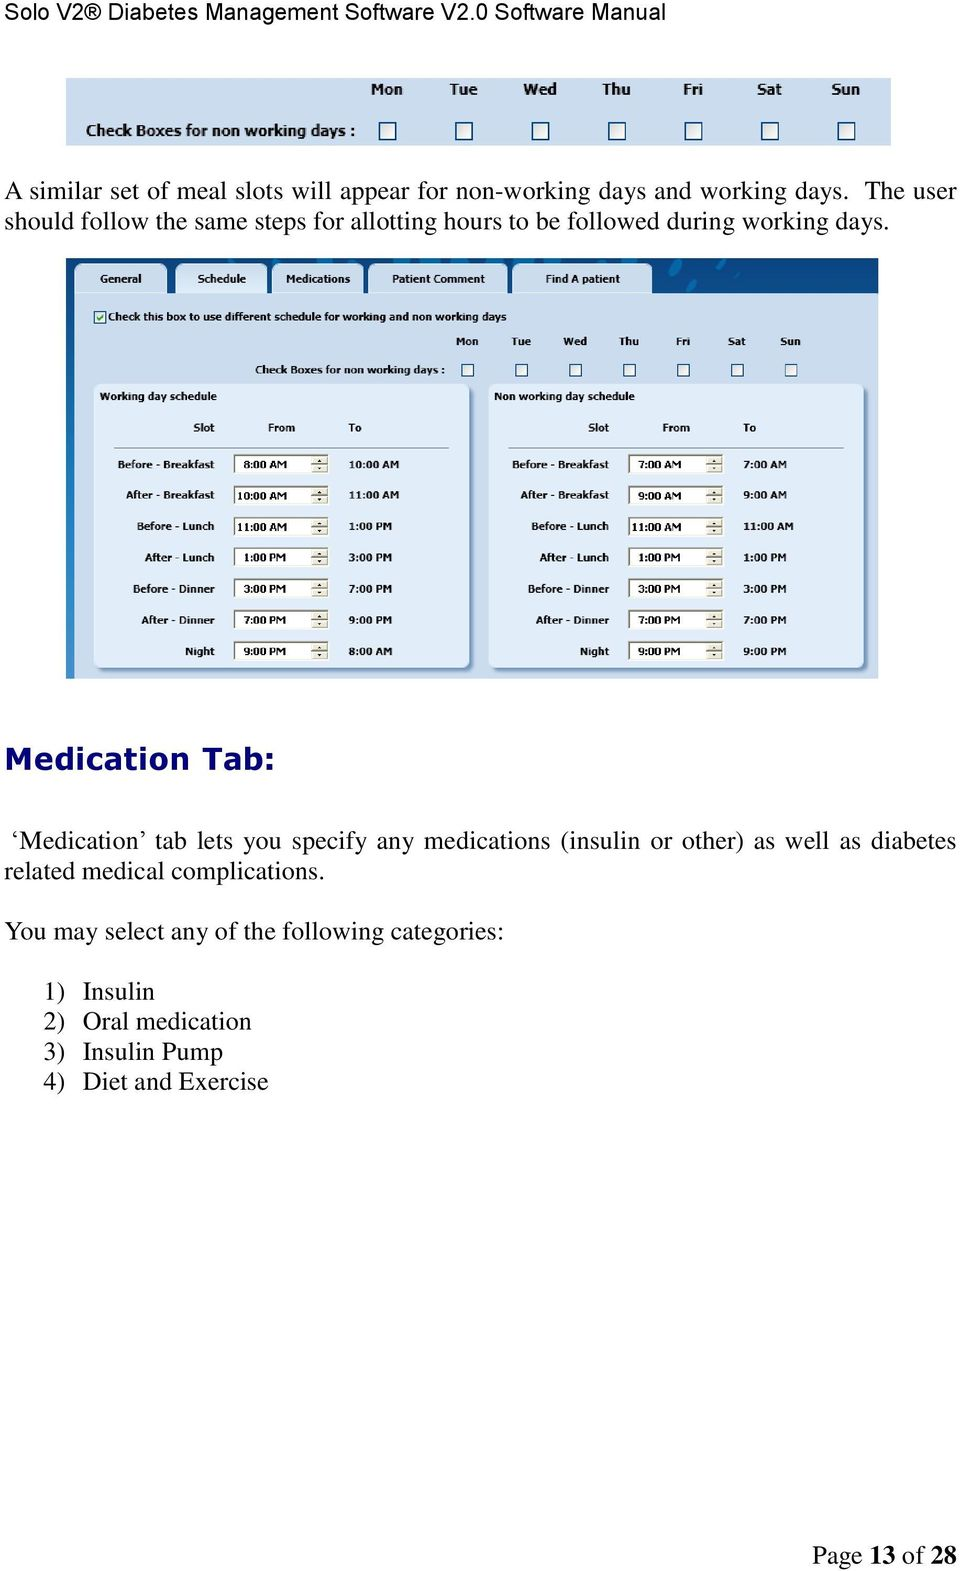 Medication Tab: Medication tab lets you specify any medications (insulin or other) as well as diabetes